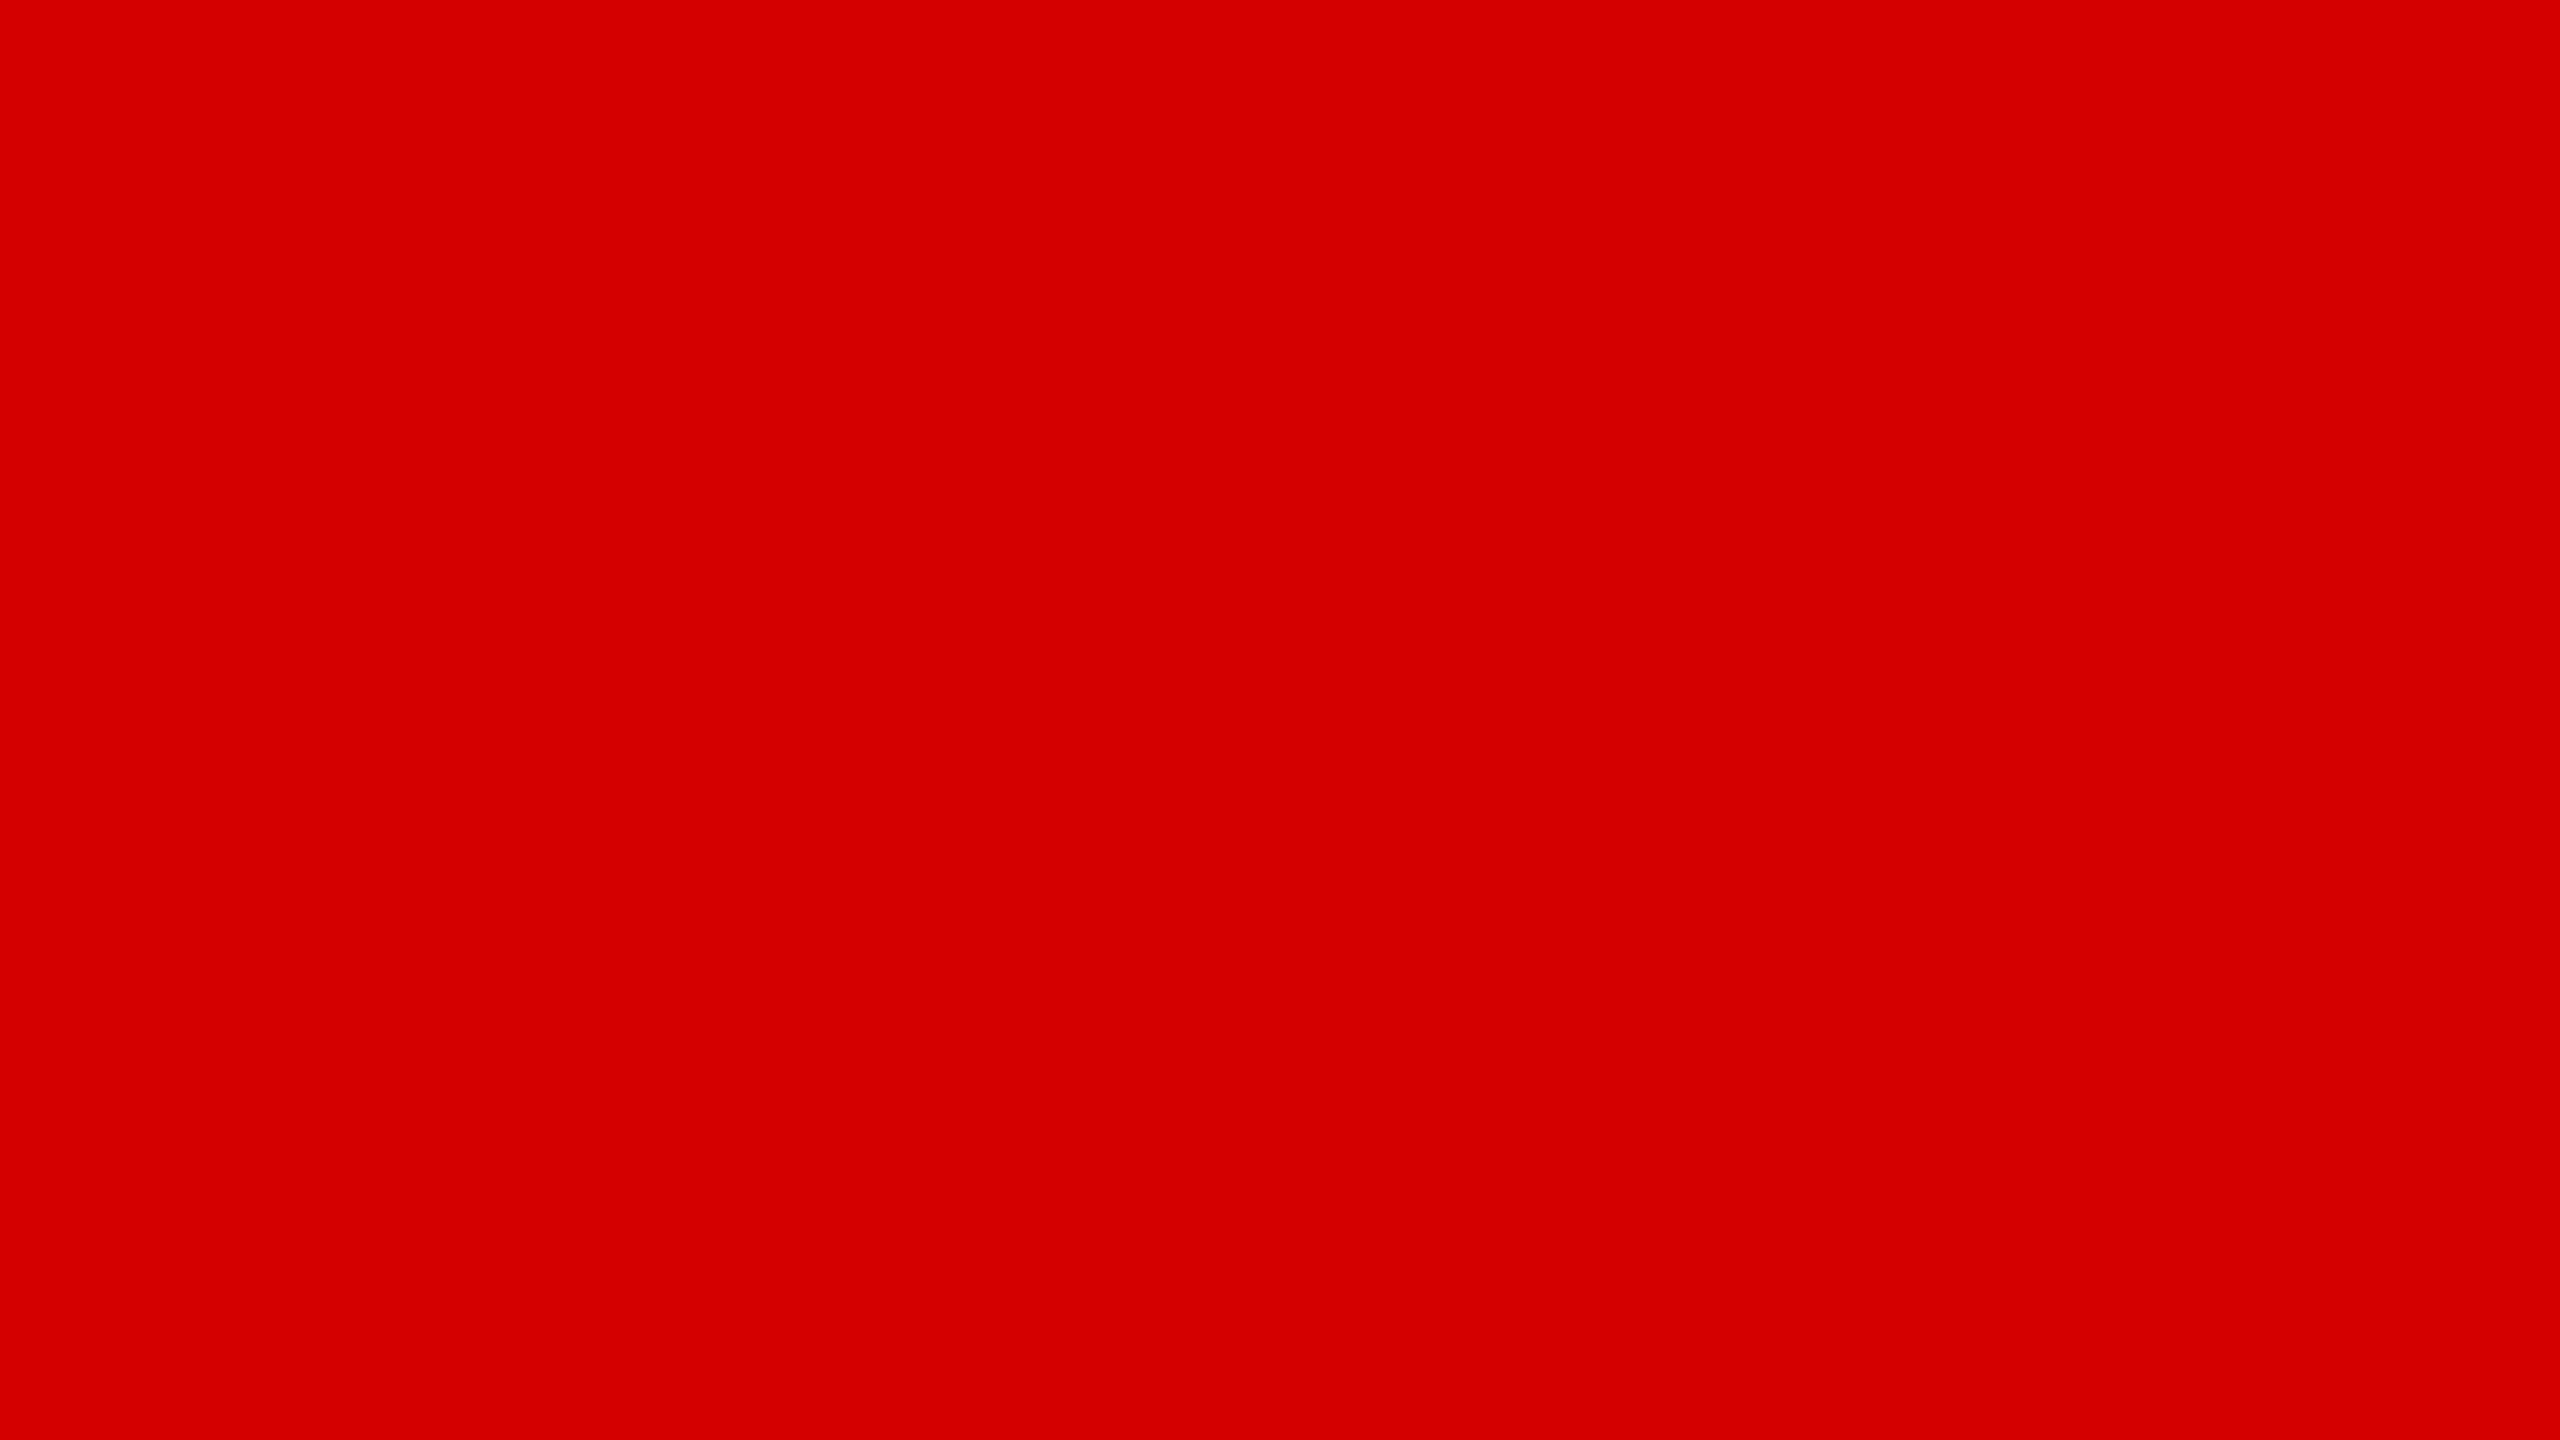 2560x1440 Rosso Corsa Solid Color Background